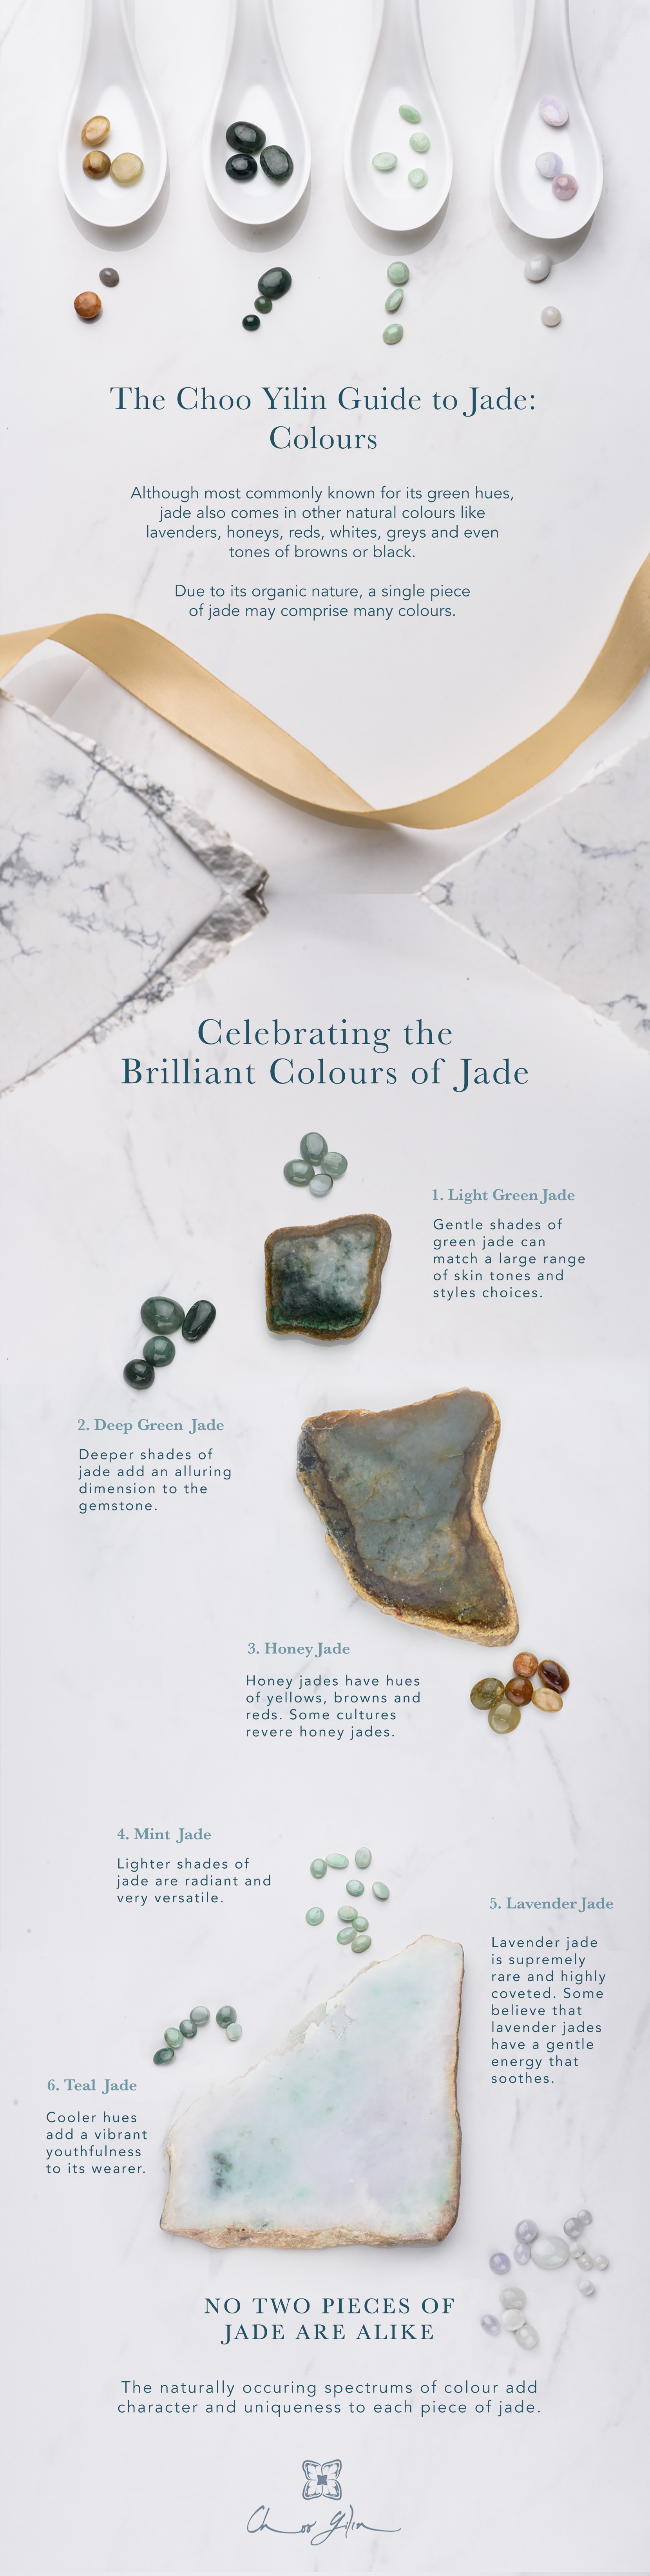 The Choo Yilin Guide to Jade: Colours. Although most commonly known for its green hues, jade also comes in other natural colours like lavenders, honeys, reds, whites, greys and even tones of browns or black.  Due to its organic nature, a single piece of jade may comprise many colours.Celebrating the Brilliant Colours of Jade. Light Green Jade.Gentle shades of green jade can match a large range of skin tones and styles choices. Deep Green Jade:Deeper shades of jade add an alluring dimension to the gemstone. Honey Jade.Honey jades have hues of yellows, browns and reds. Some cultures revere honey jades. Mint Jade.Lighter shades of jade are radiant and very versatile. Lavender Jade.Lavender jade is supremely rare and highly coveted. Some believe that lavender jades have a gentle energy that soothes. Teal Jade.Cooler hues add a vibrant youthfulness to its wearer.NO TWO PIECES OF JADE ARE ALIKE The naturally occuring spectrums of colour add character and uniqueness to each piece of jade.